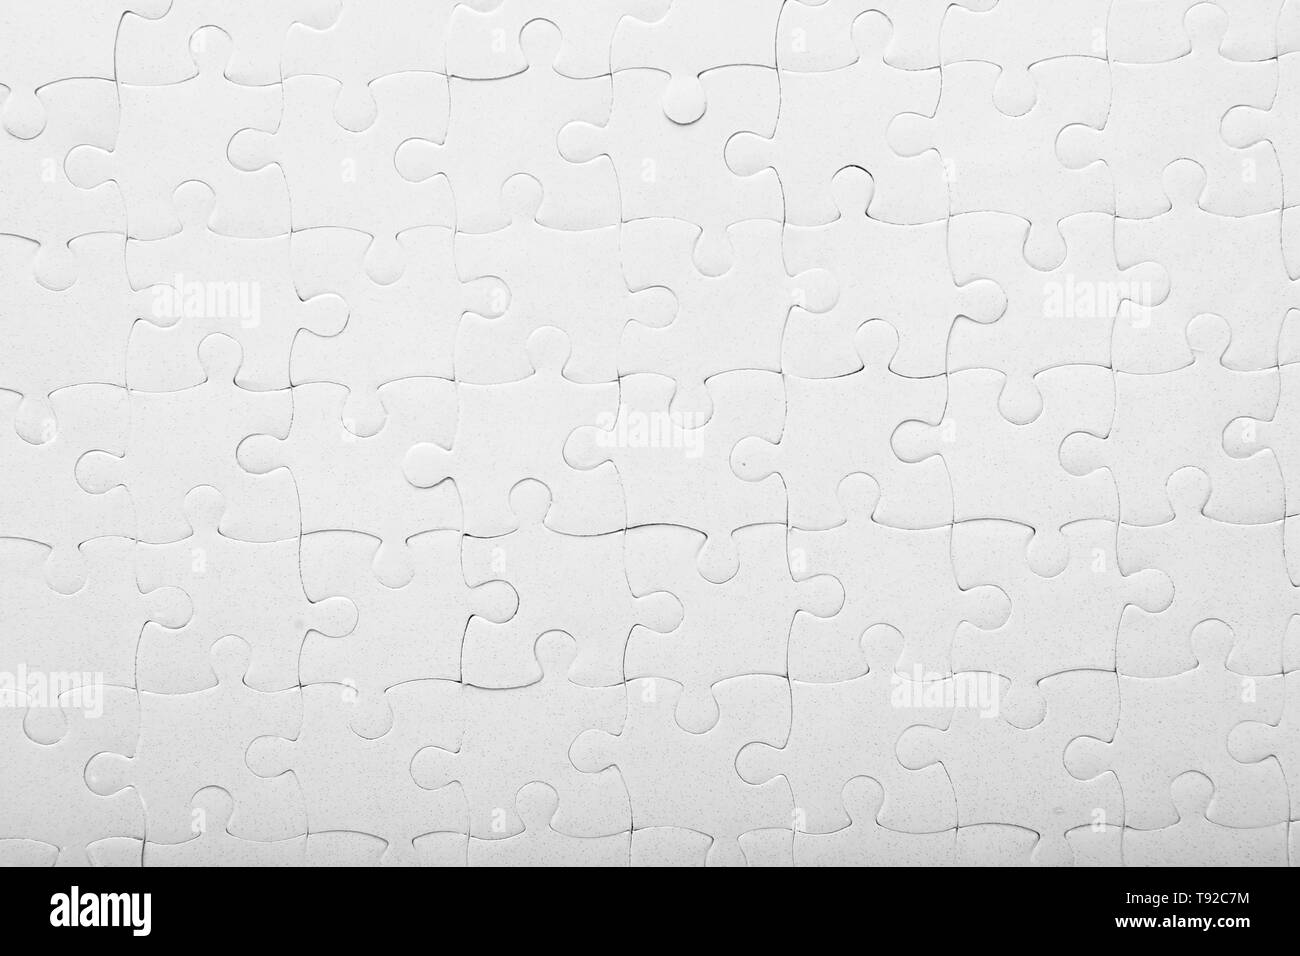 Complete jigsaw puzzle, closeup - Stock Image